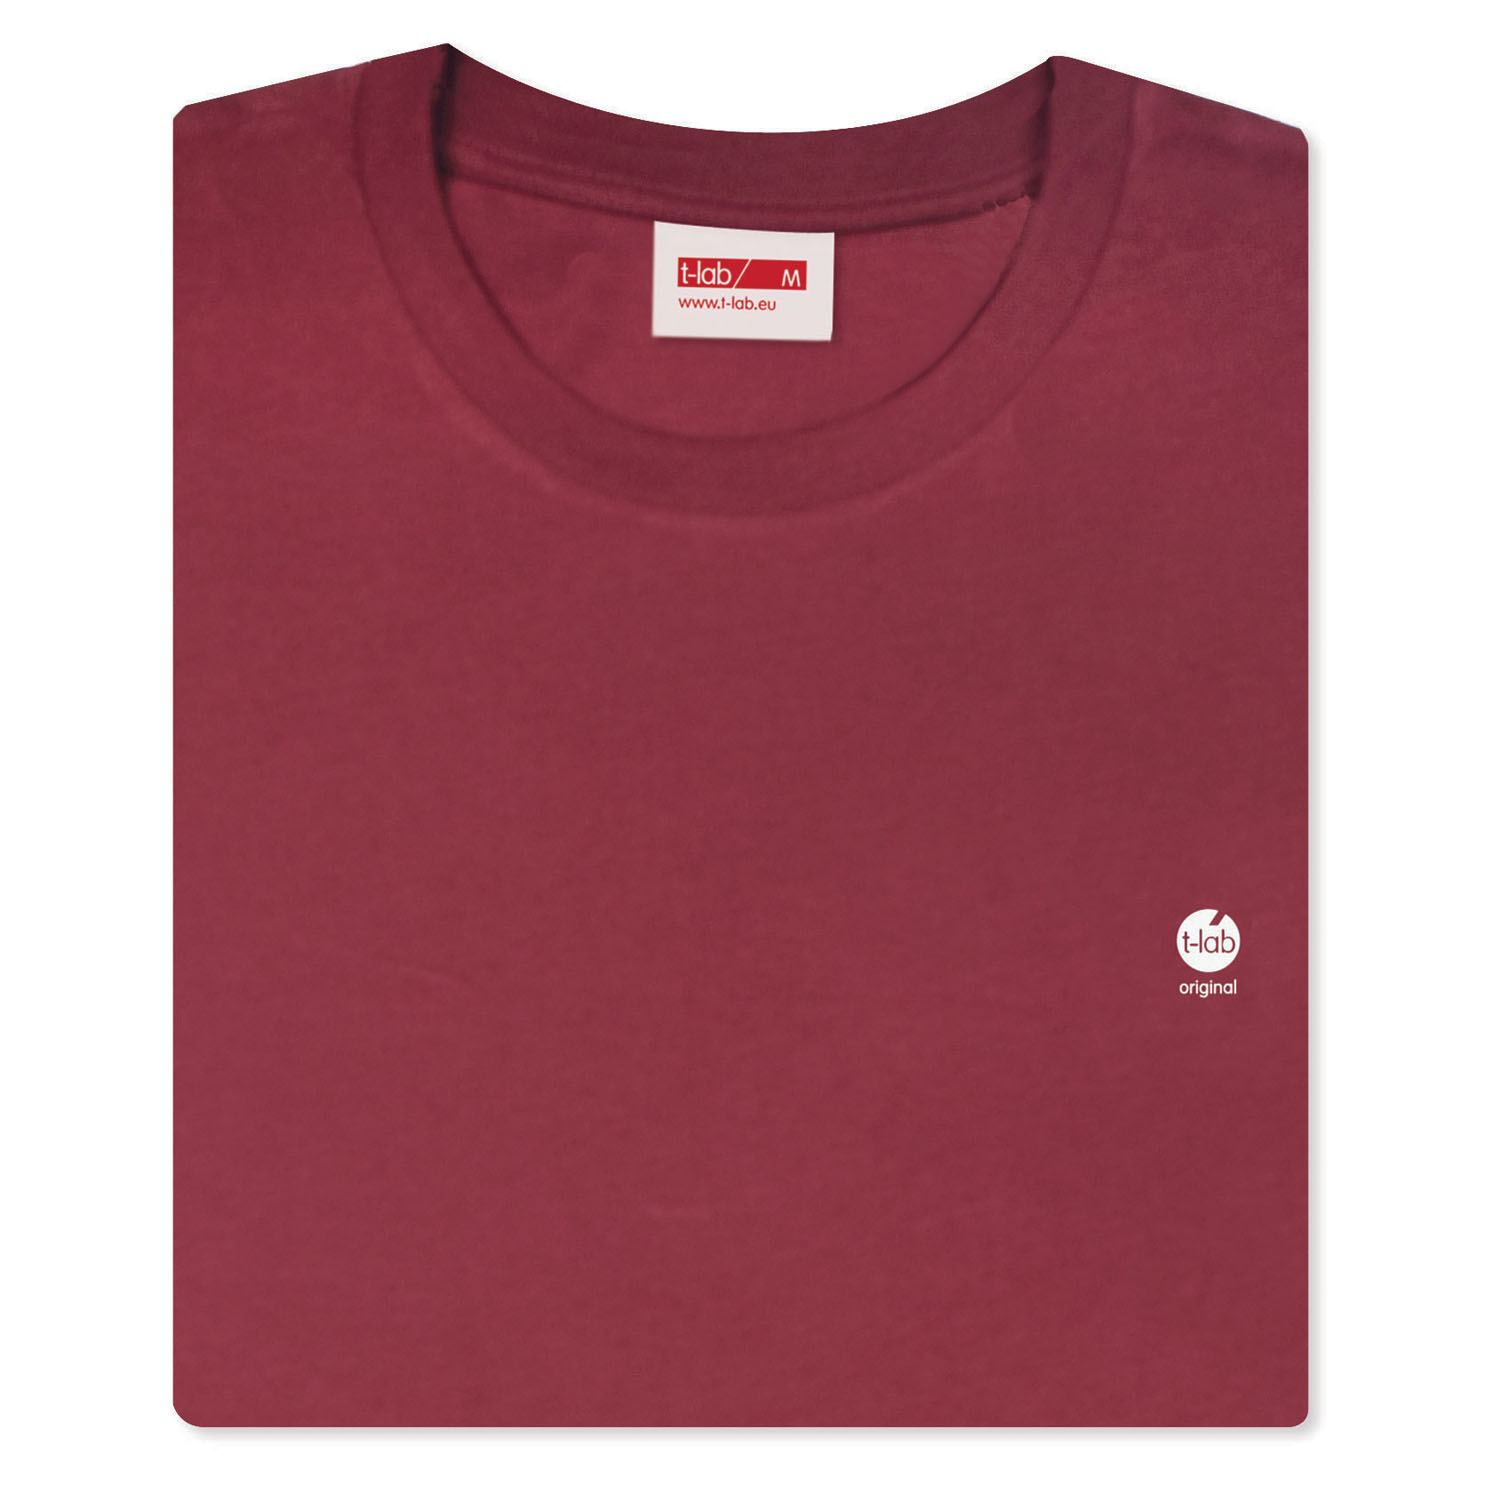 T-lab-Mio-mens-organic-t-shirt-burgundy